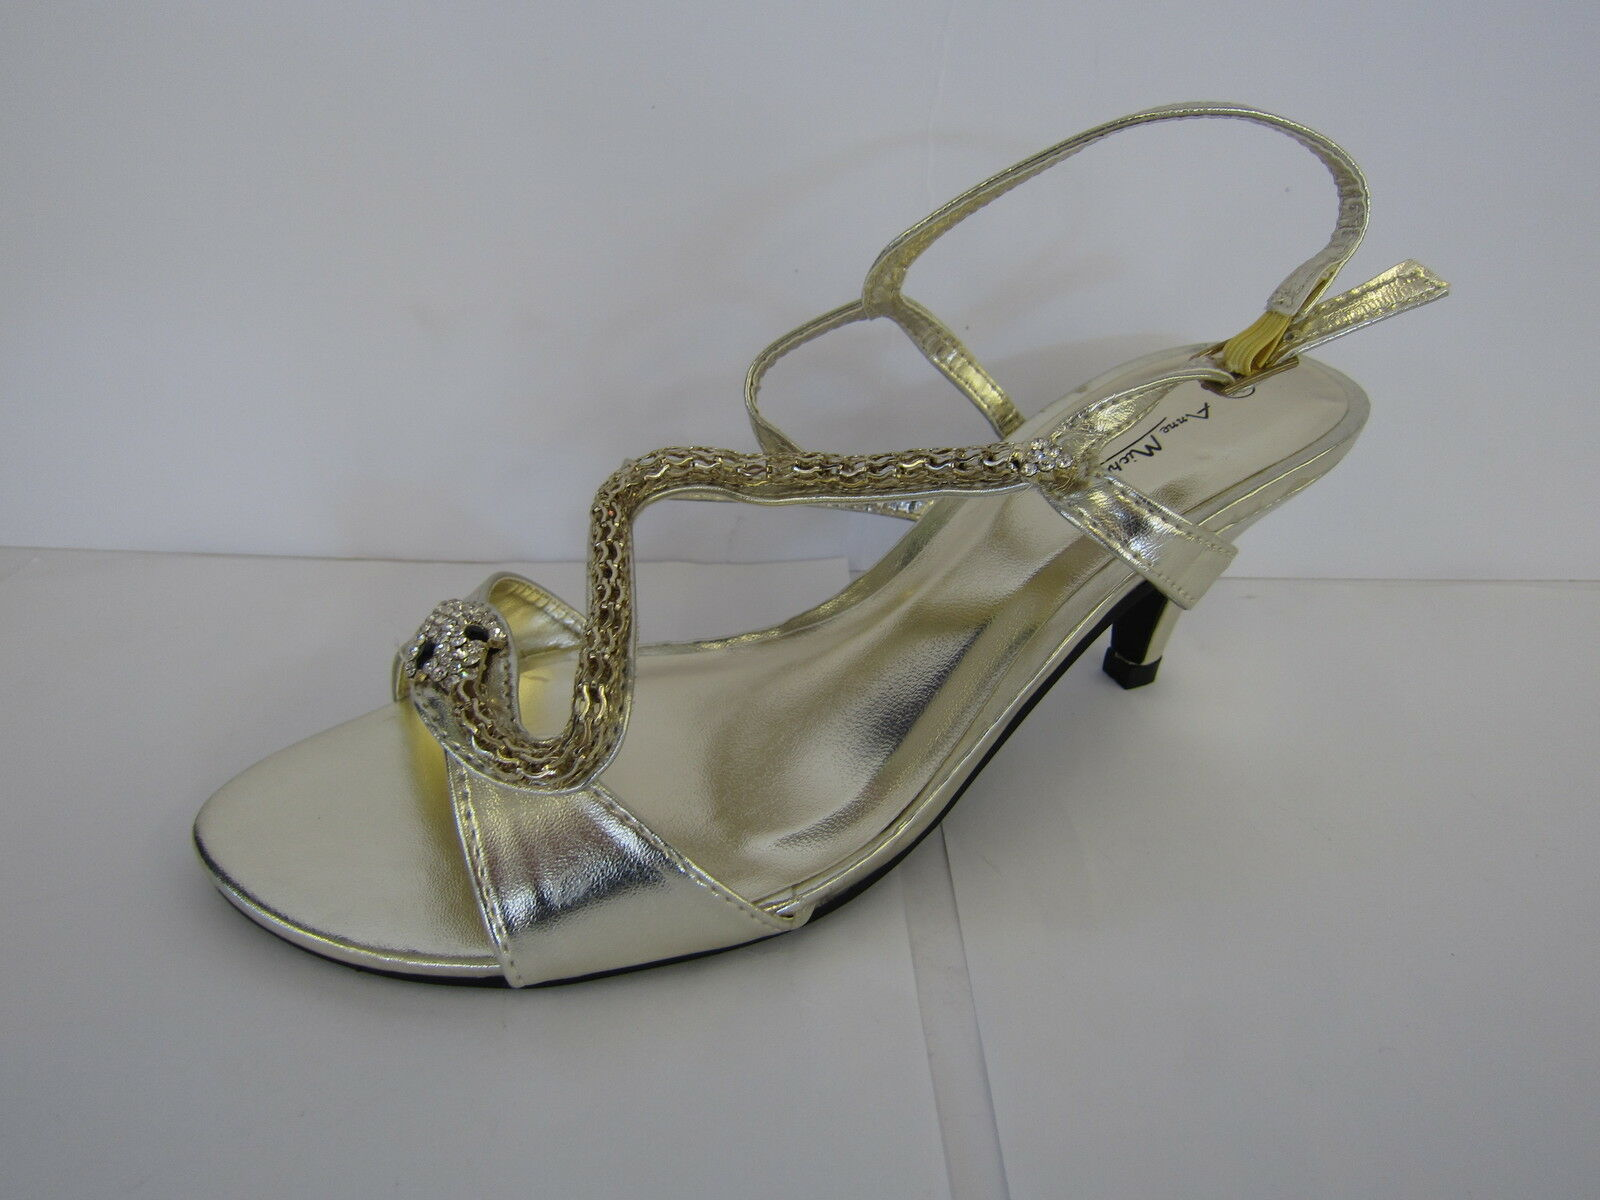 LADIES ANNE MICHELLE WITH GOLD OPEN TOE SANDAL WITH MICHELLE SNAKE DESIGN L3414 d1d0db